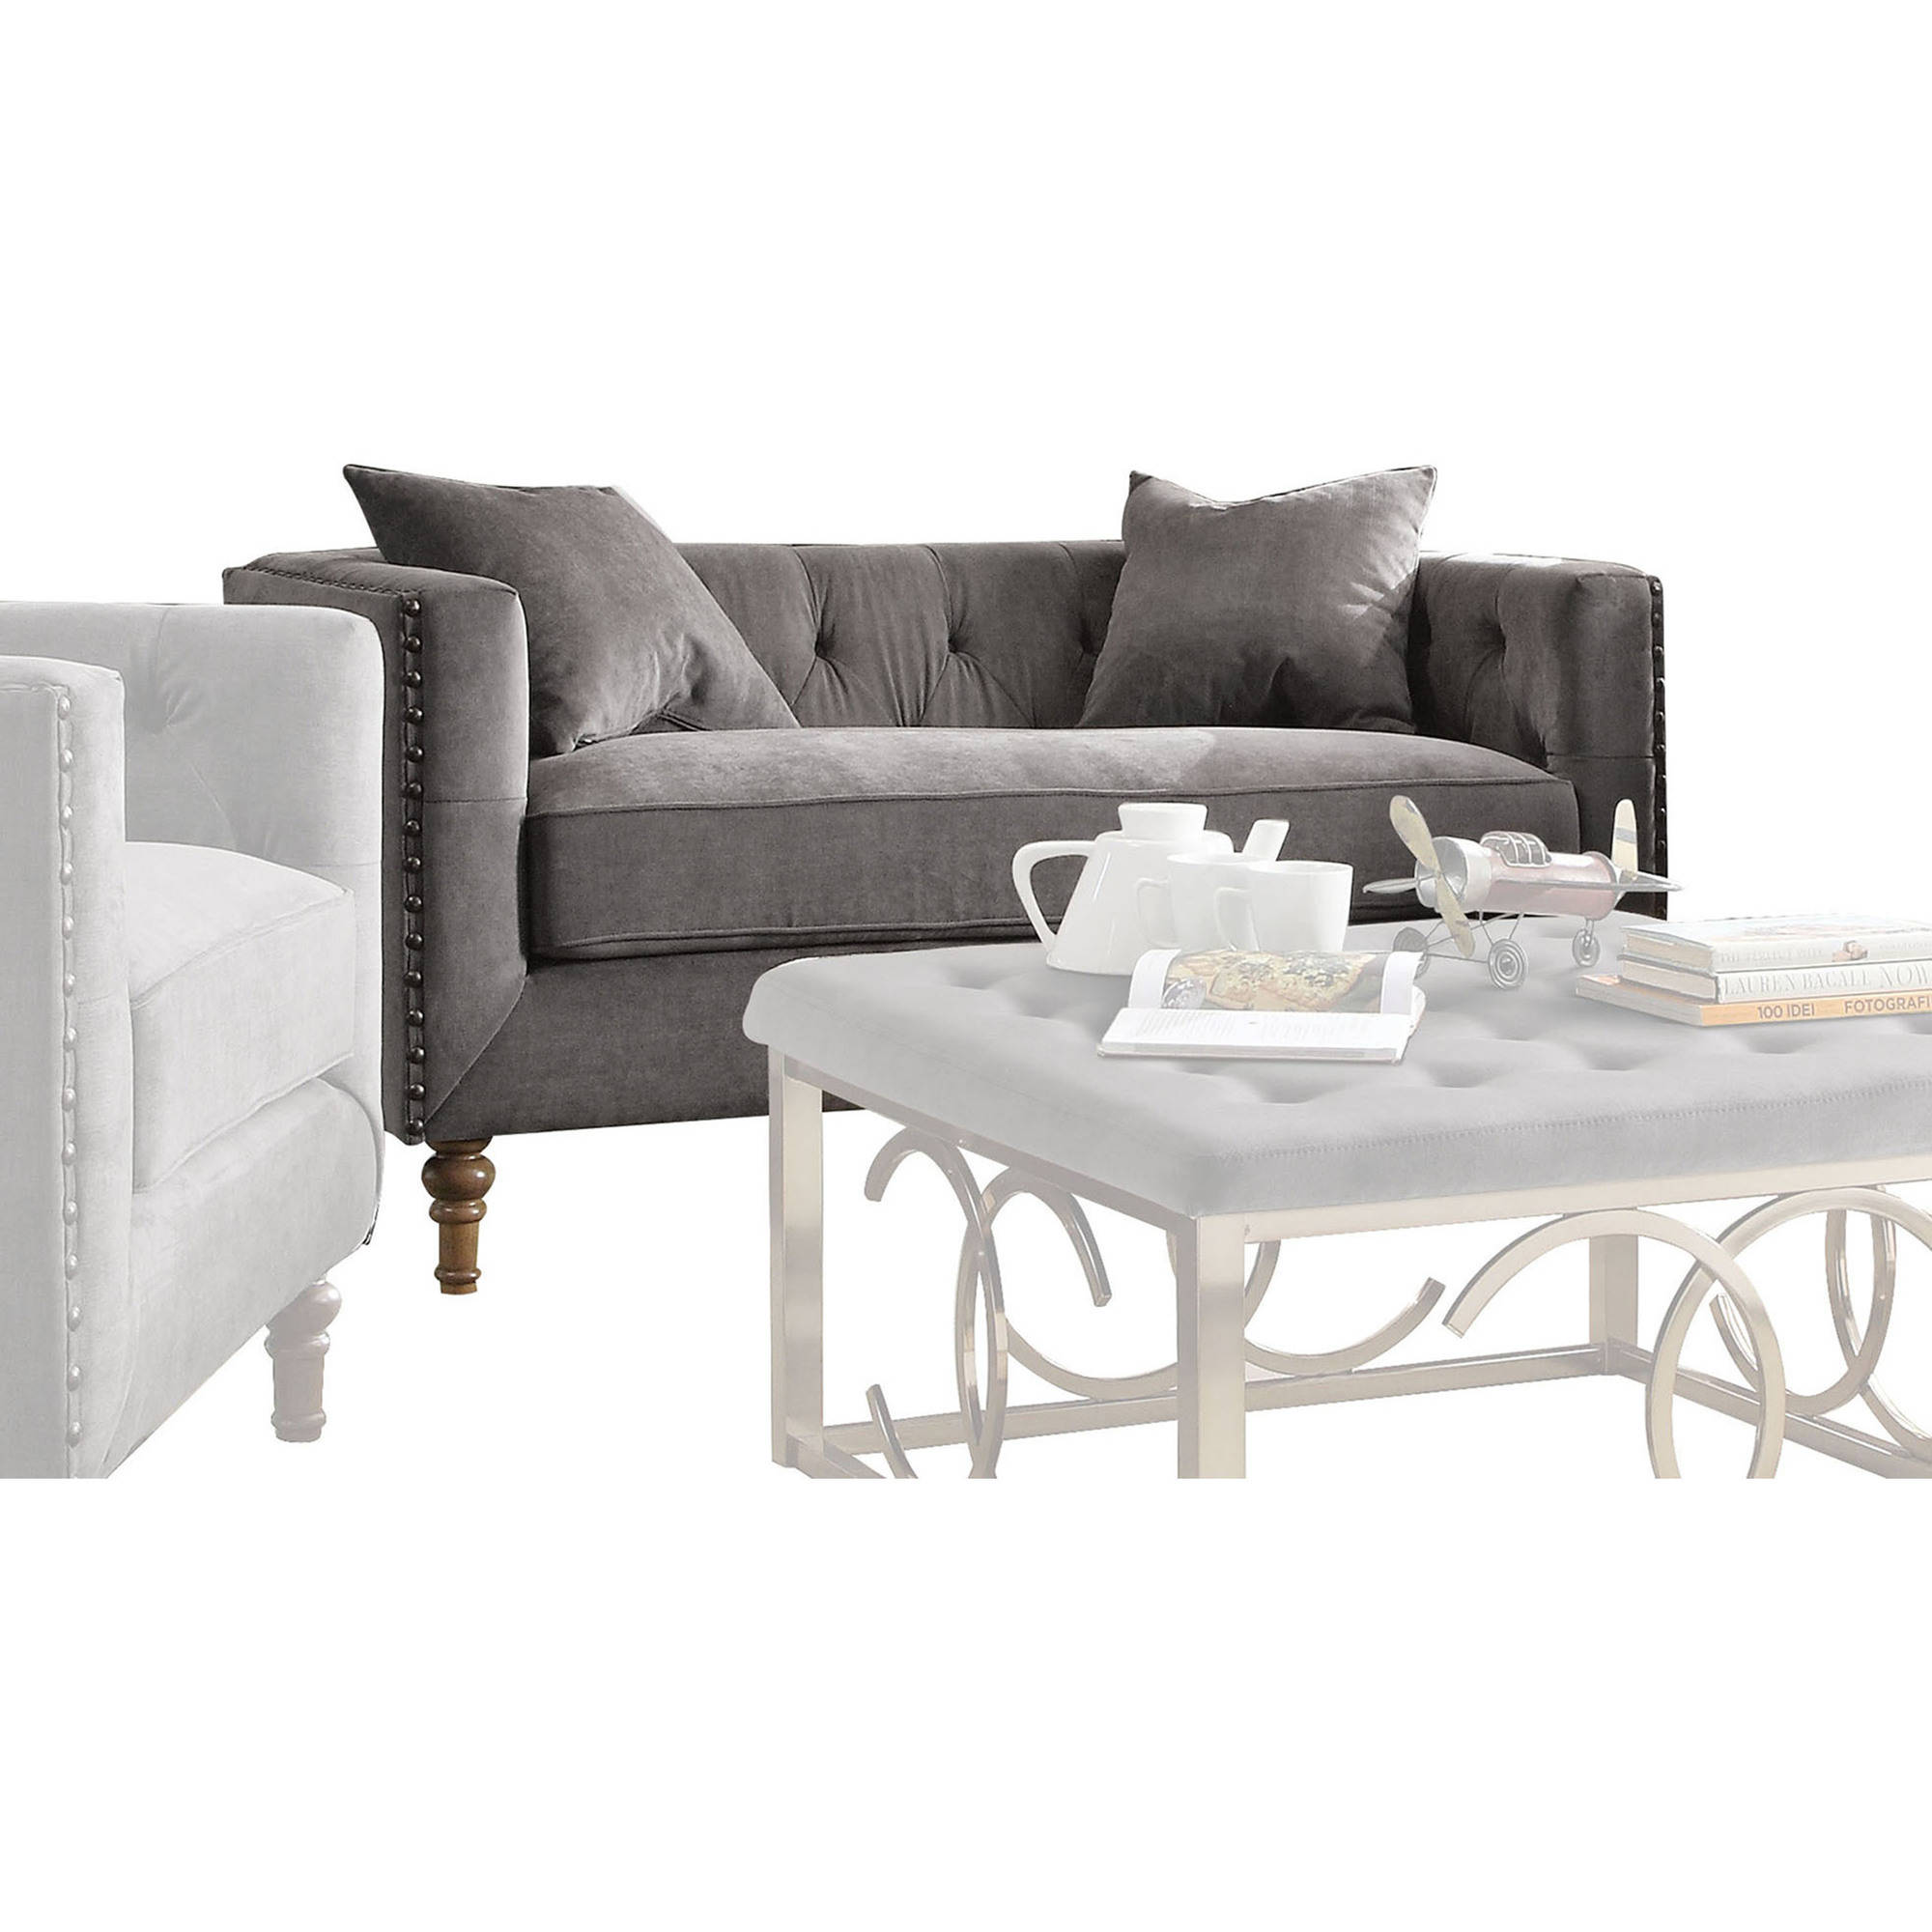 ACME Sidonia Down Feather Filled Loveseat with 2 Pillows, Grey Velvet by